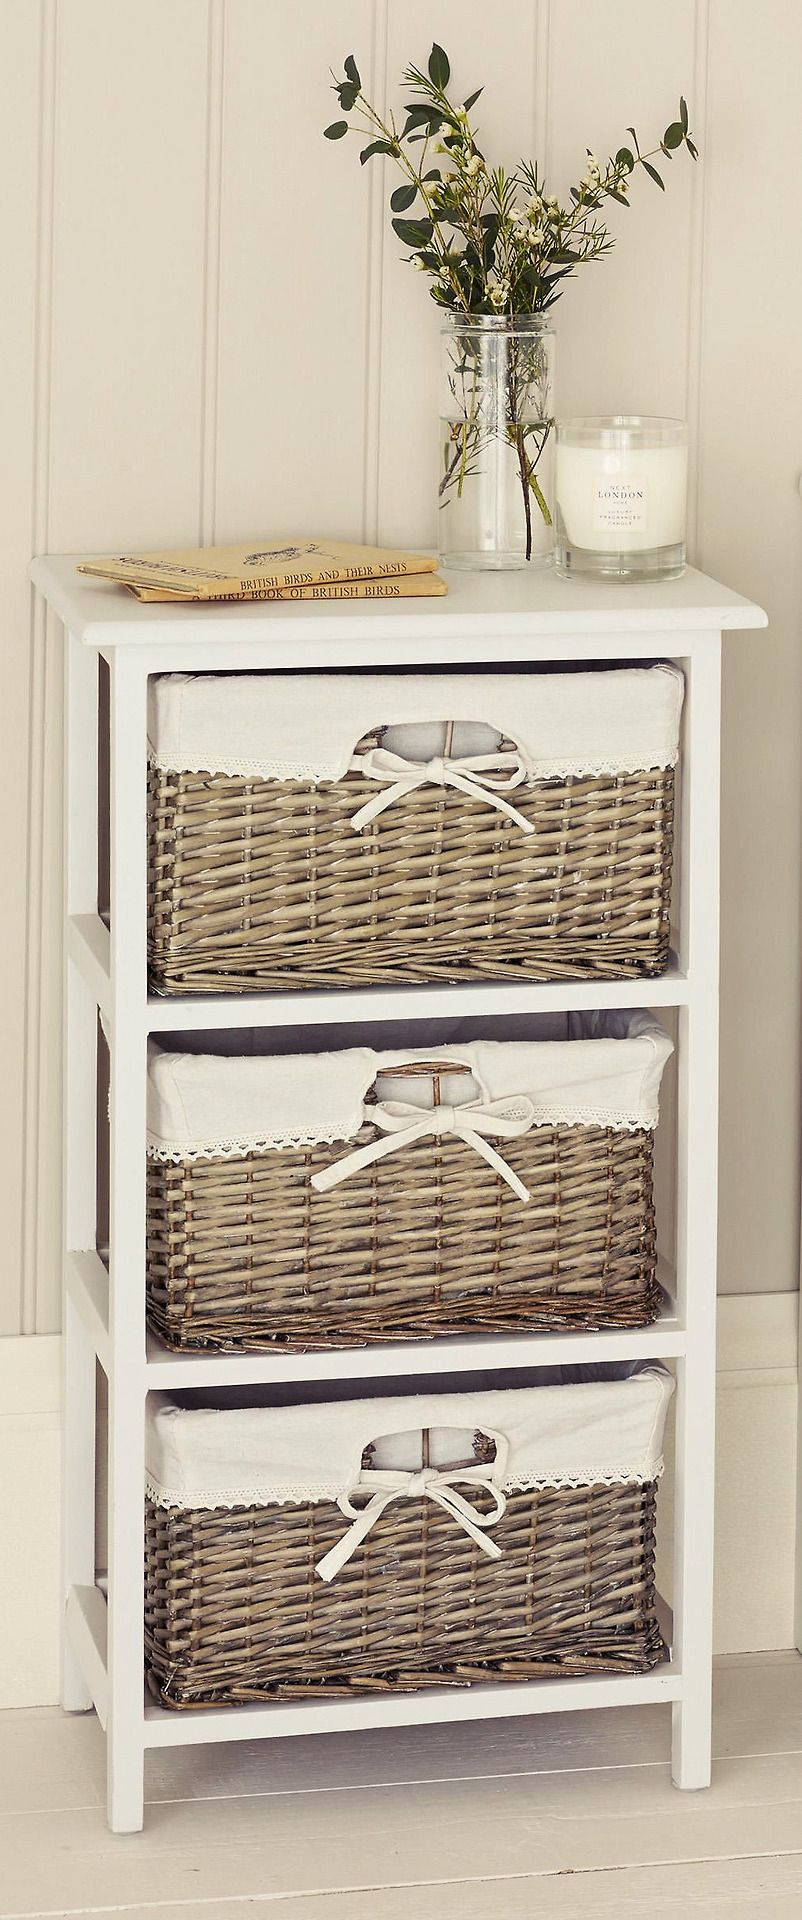 Natural Wicker Drawer Unit From Next Home Decor Decor Room